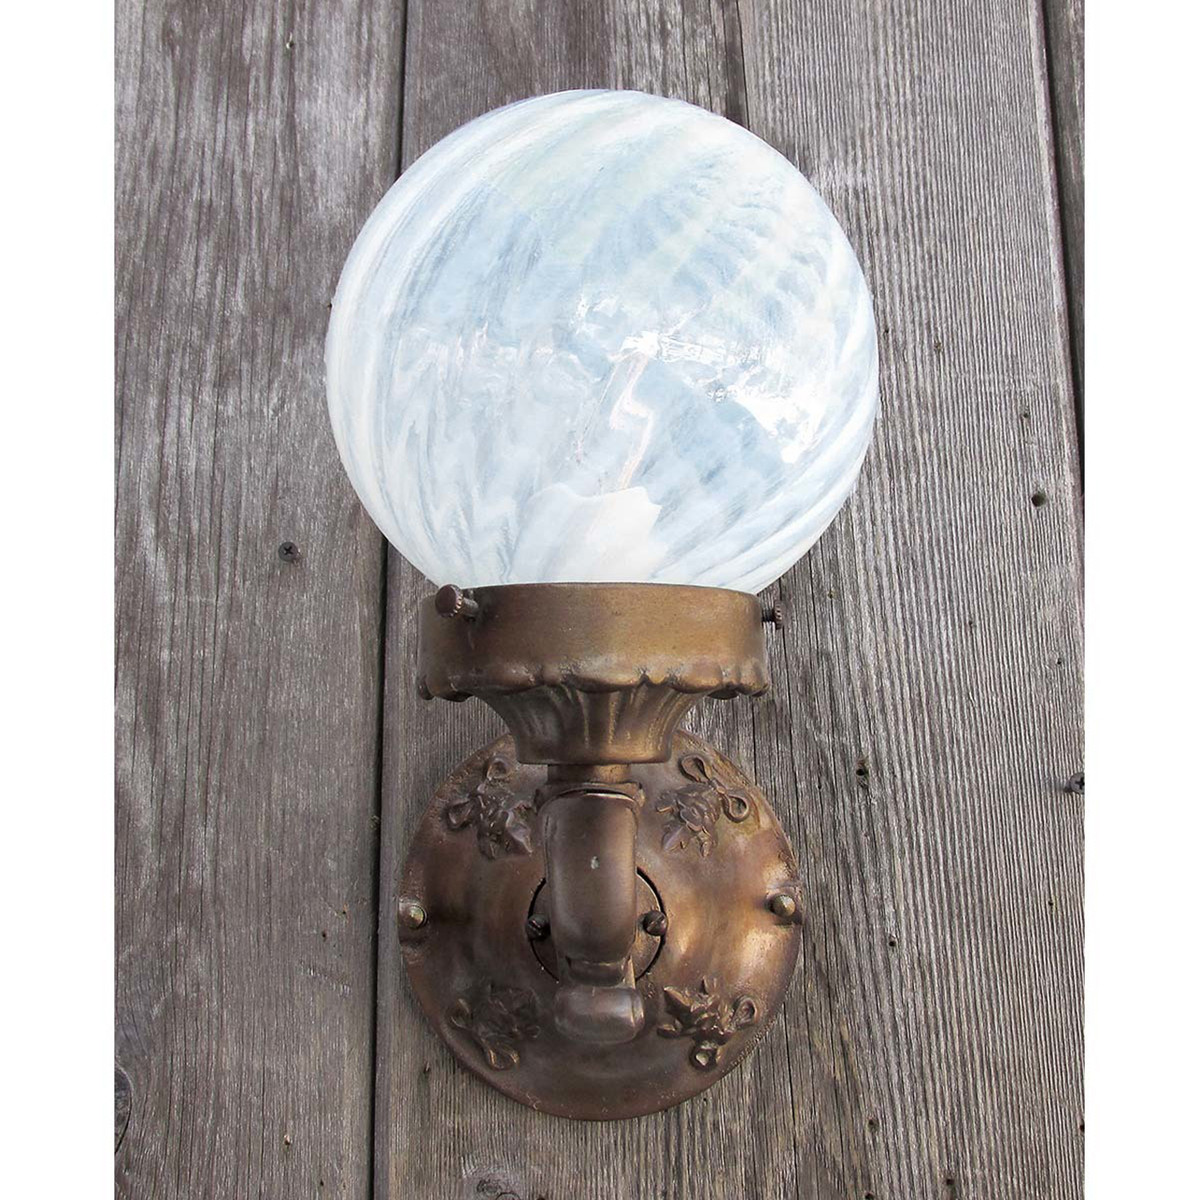 L12248 - Antique Exterior Wall Sconce with Vintage Globe